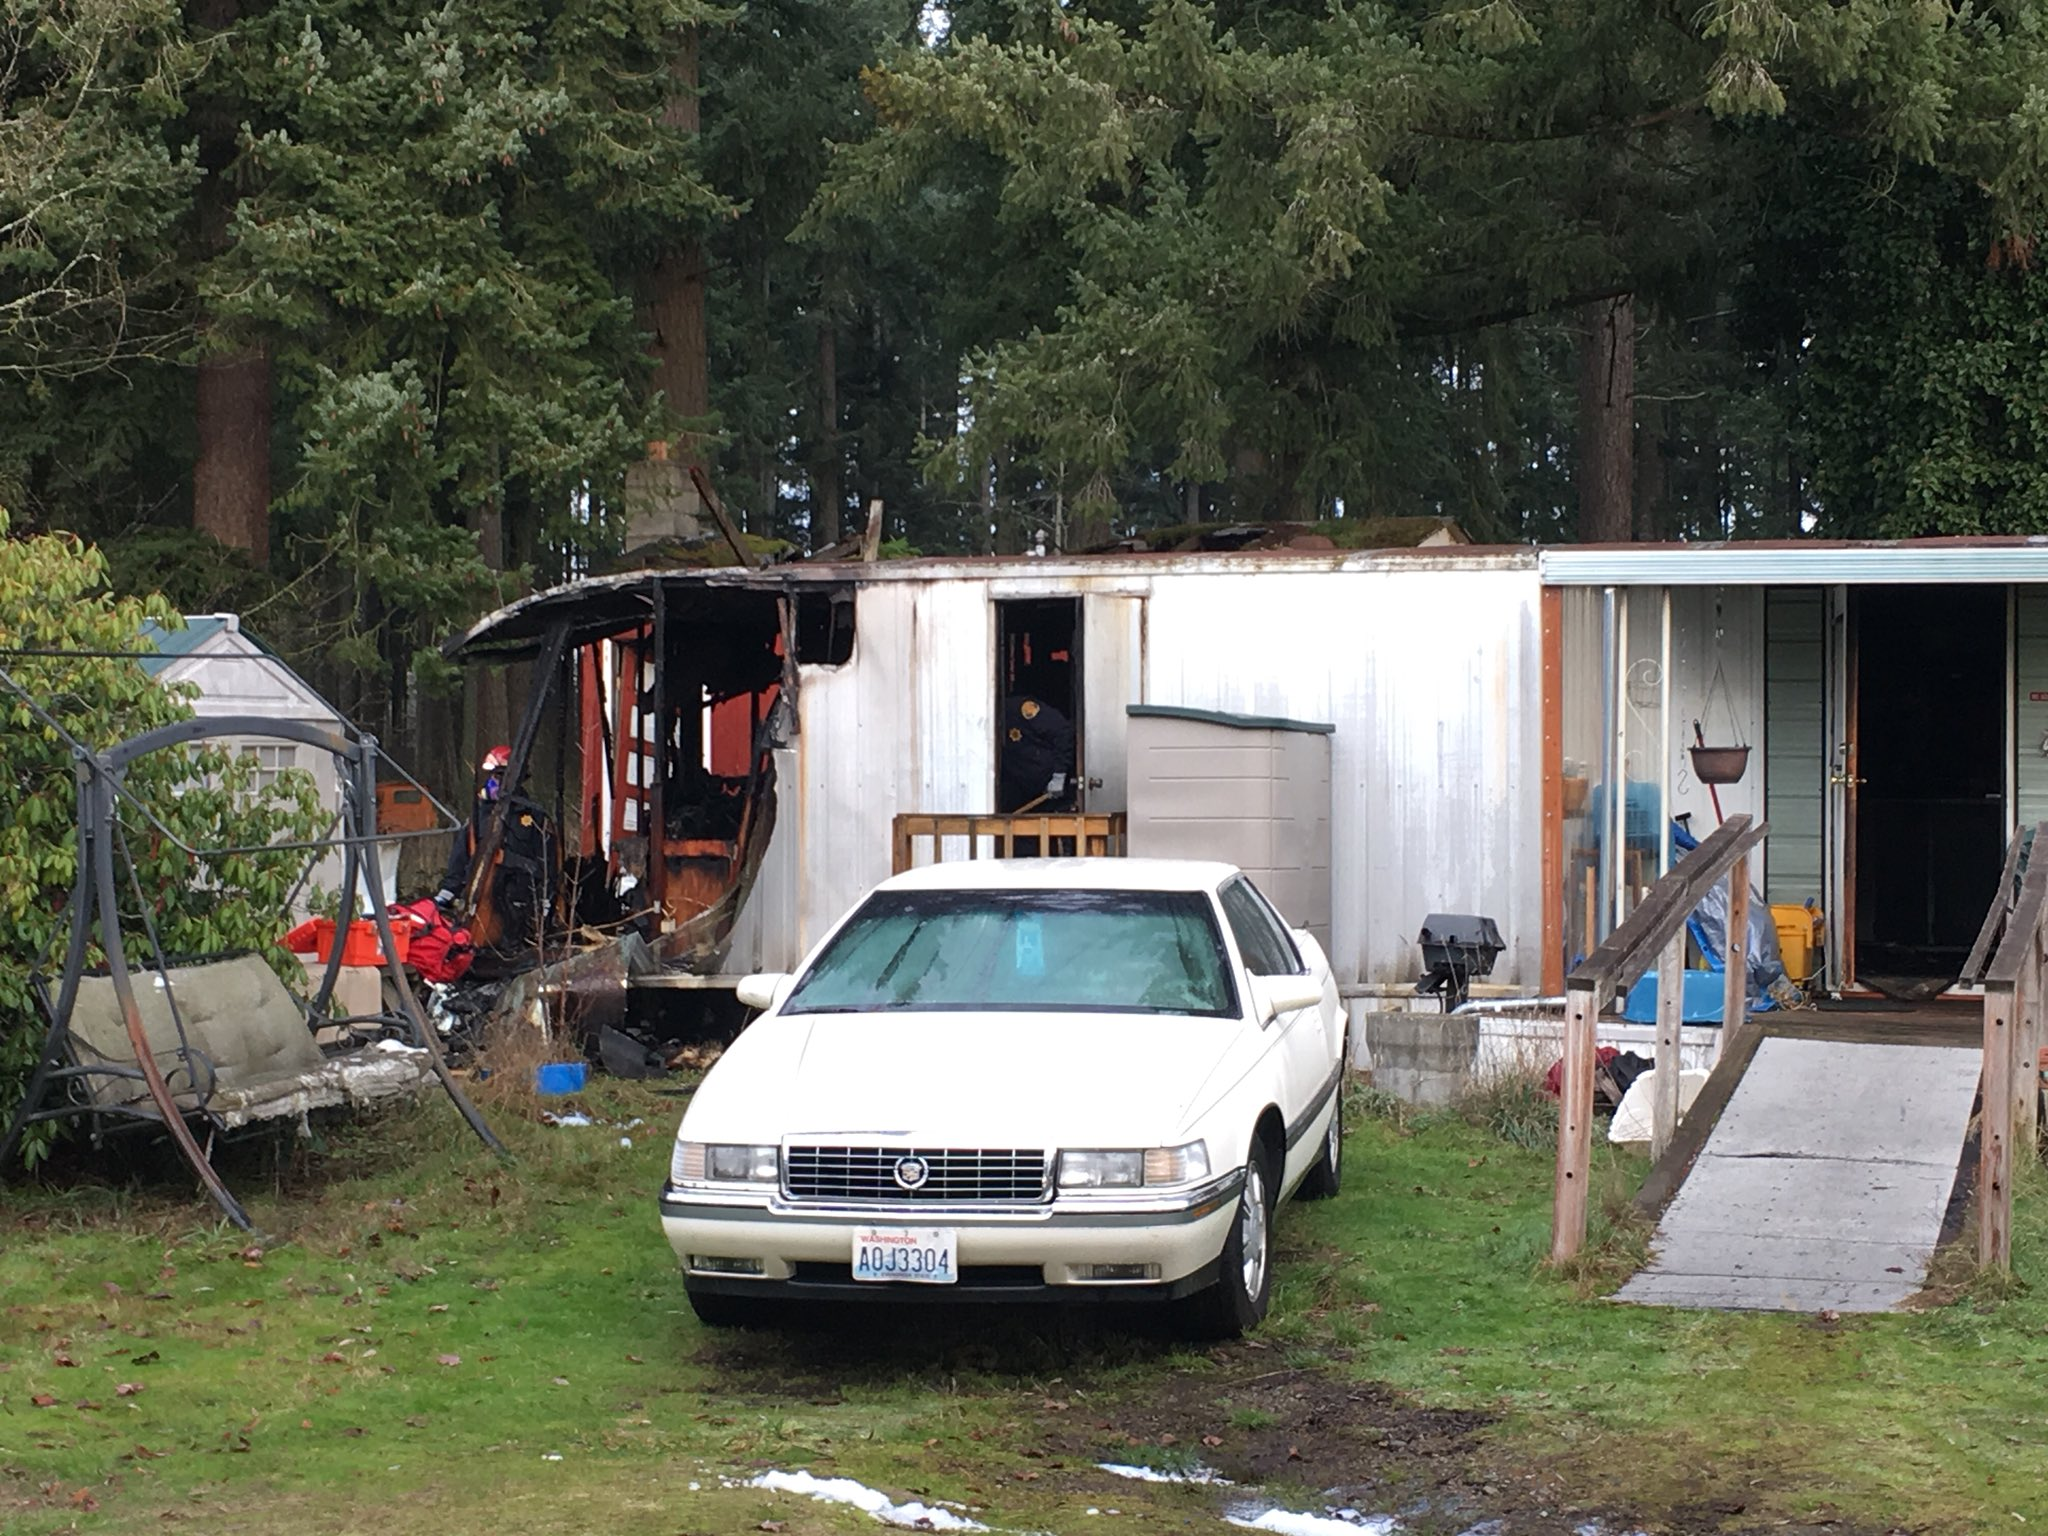 A fire burns a mobile home in Spanaway on Jan. 2, 2018 (KOMO Photo)